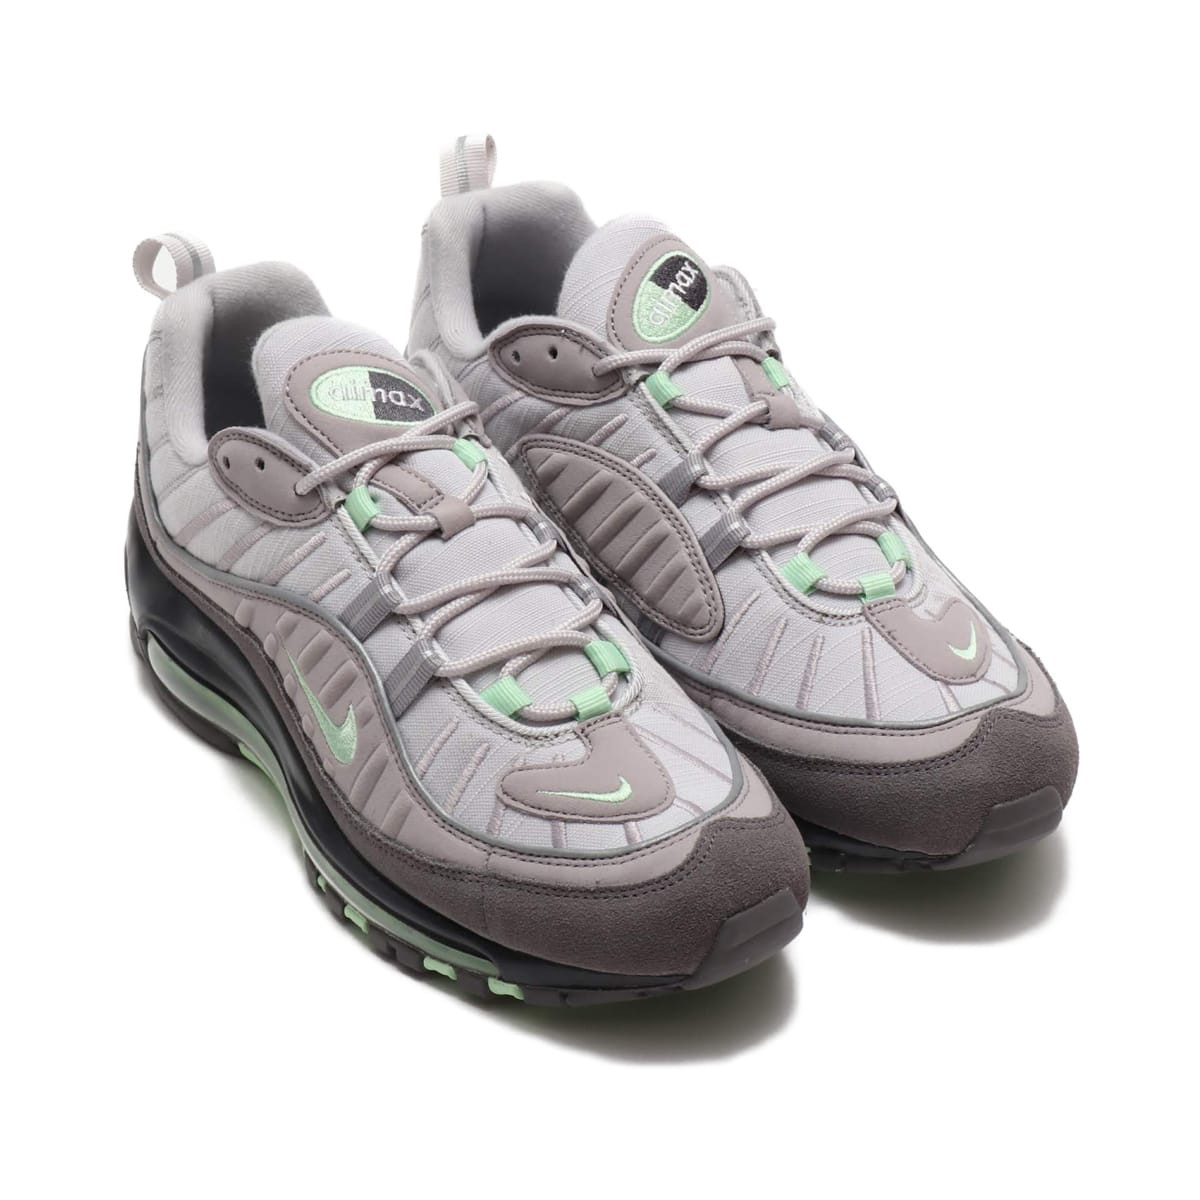 NIKE AIR MAX 98 VST GRY/FRSH MNT-ATMSPHR GRY-G 19SU-S_photo_large